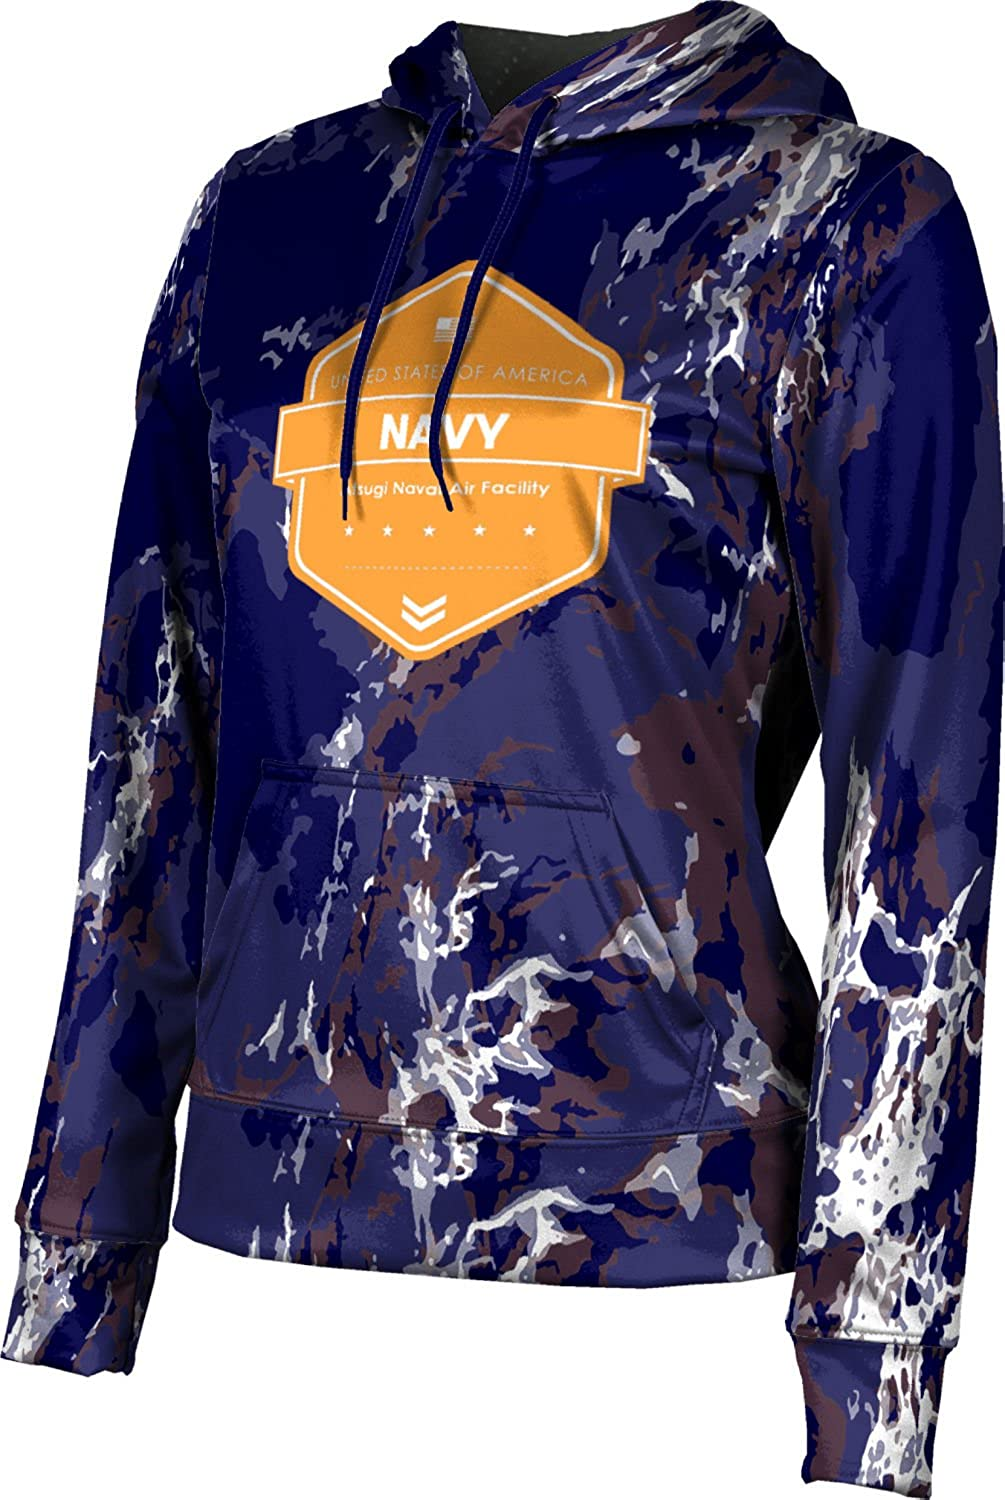 ProSphere Women's Atsugi Naval Air Facility Military Marble Pullover Hoodie